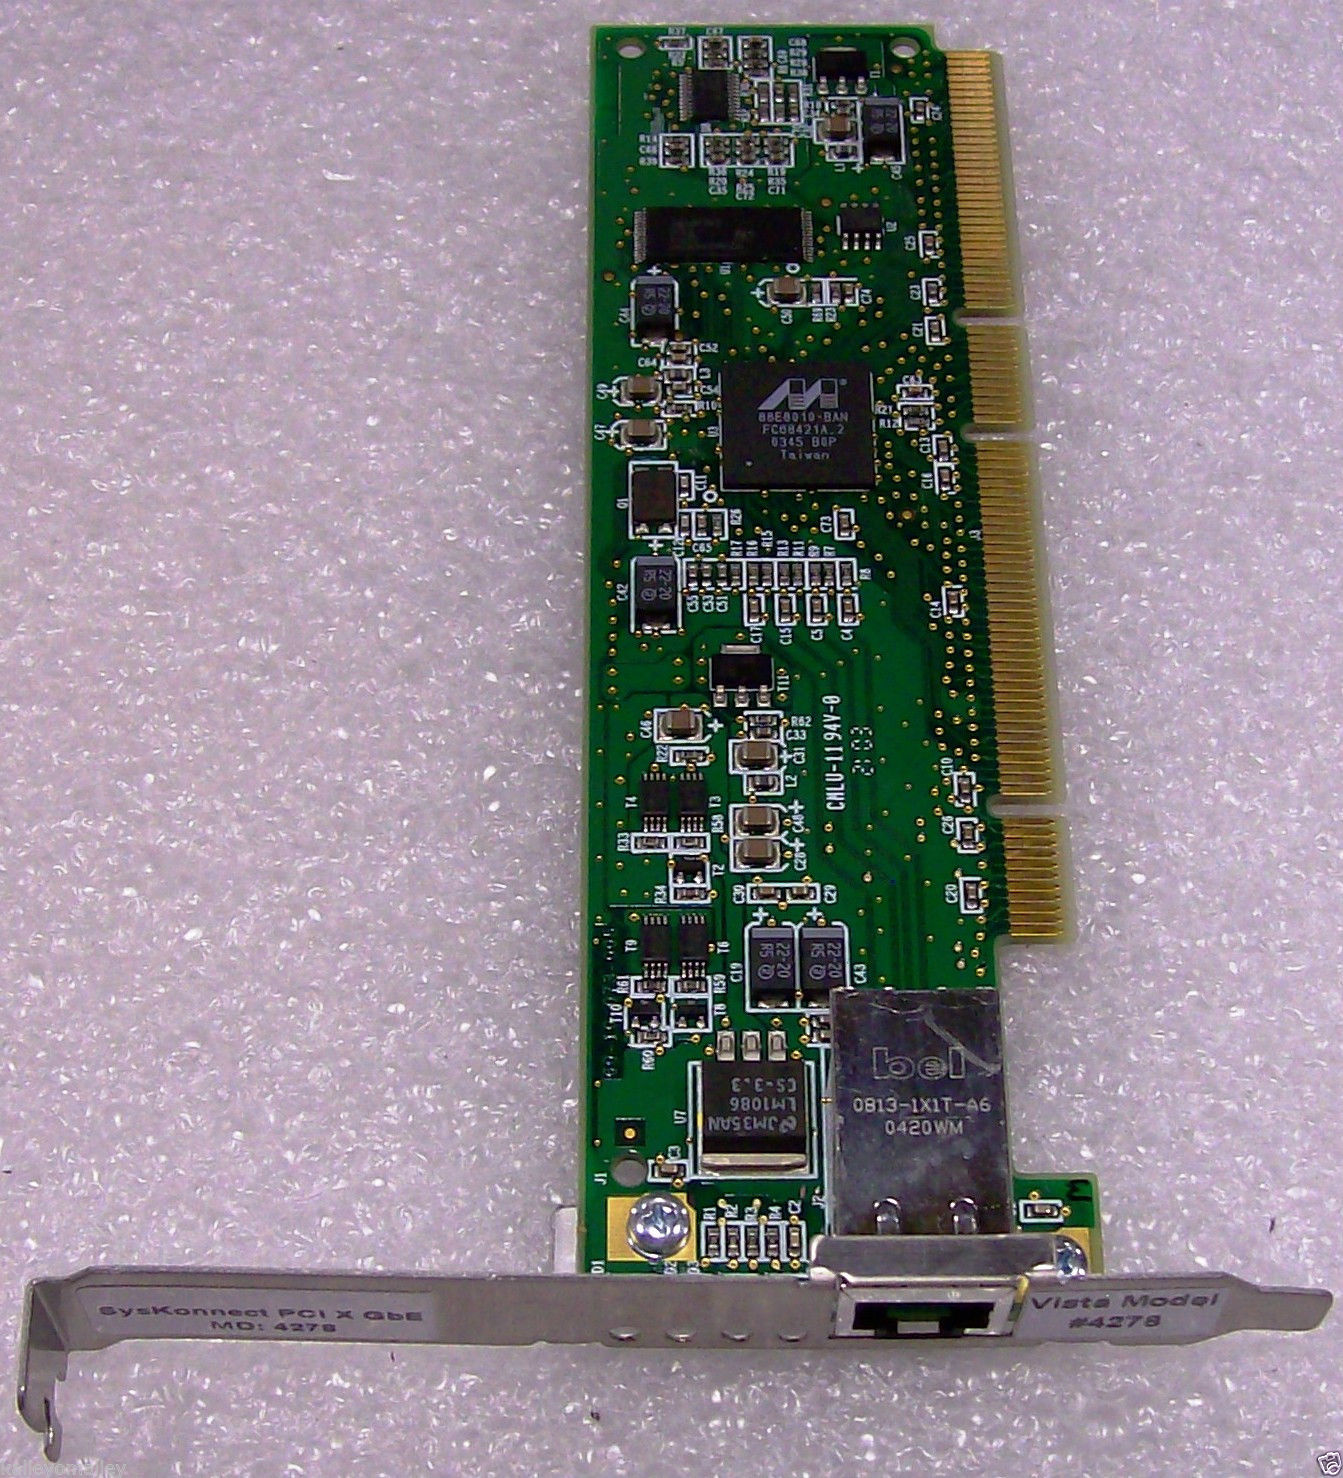 SysKonnect SK-9821 PCI 64bit 66Mhz 1Gbps RJ45 Gigabit Network Adapter